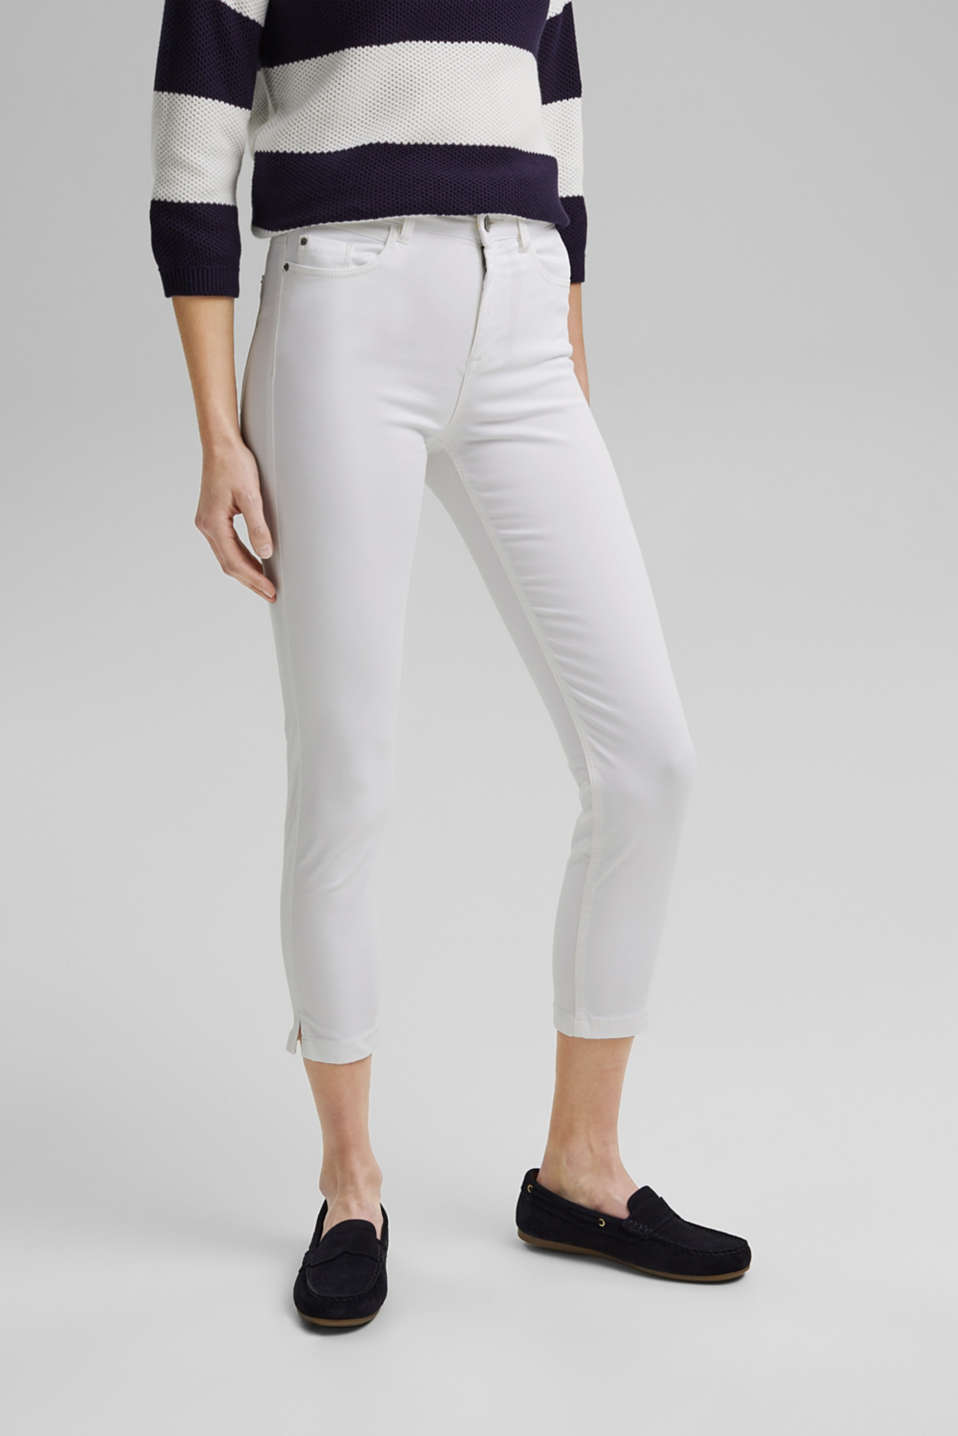 Esprit - Pantalon corsaire au confort super stretch